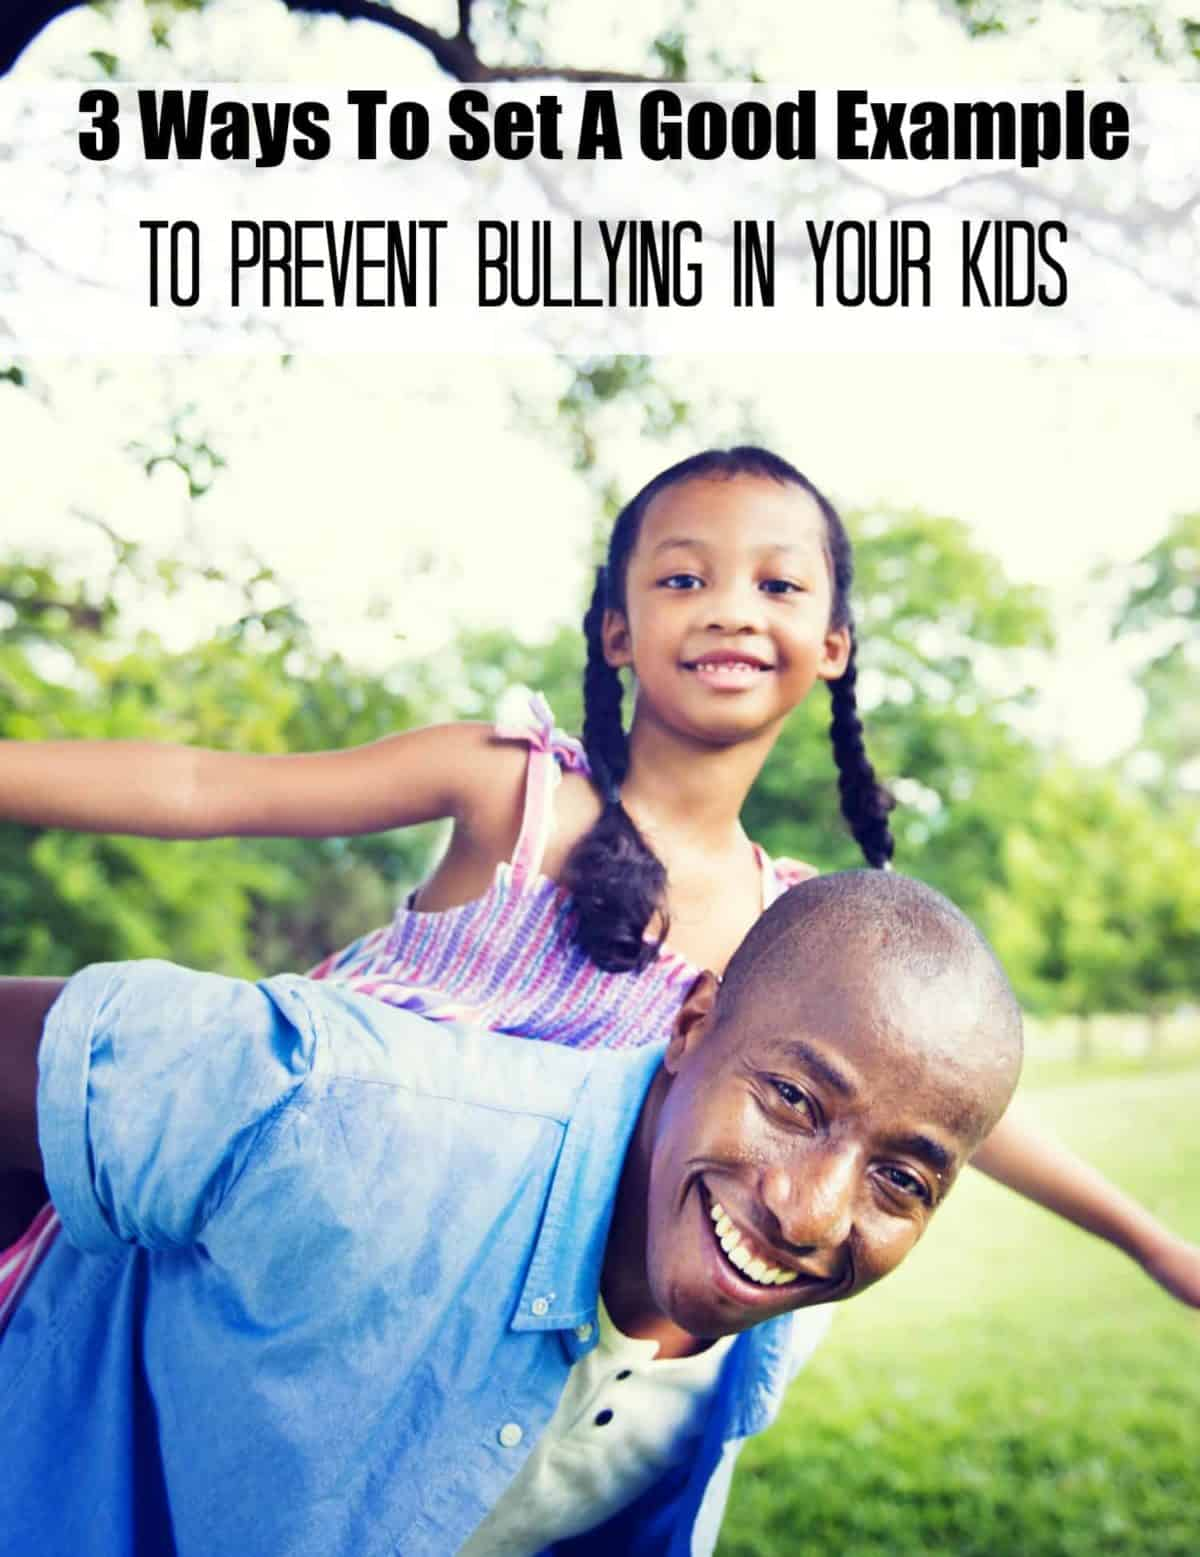 The best way to prevent bullying in your kids is to raise them to be kind & loving children. How do you do this? Follow these 3 ways to set a good example!